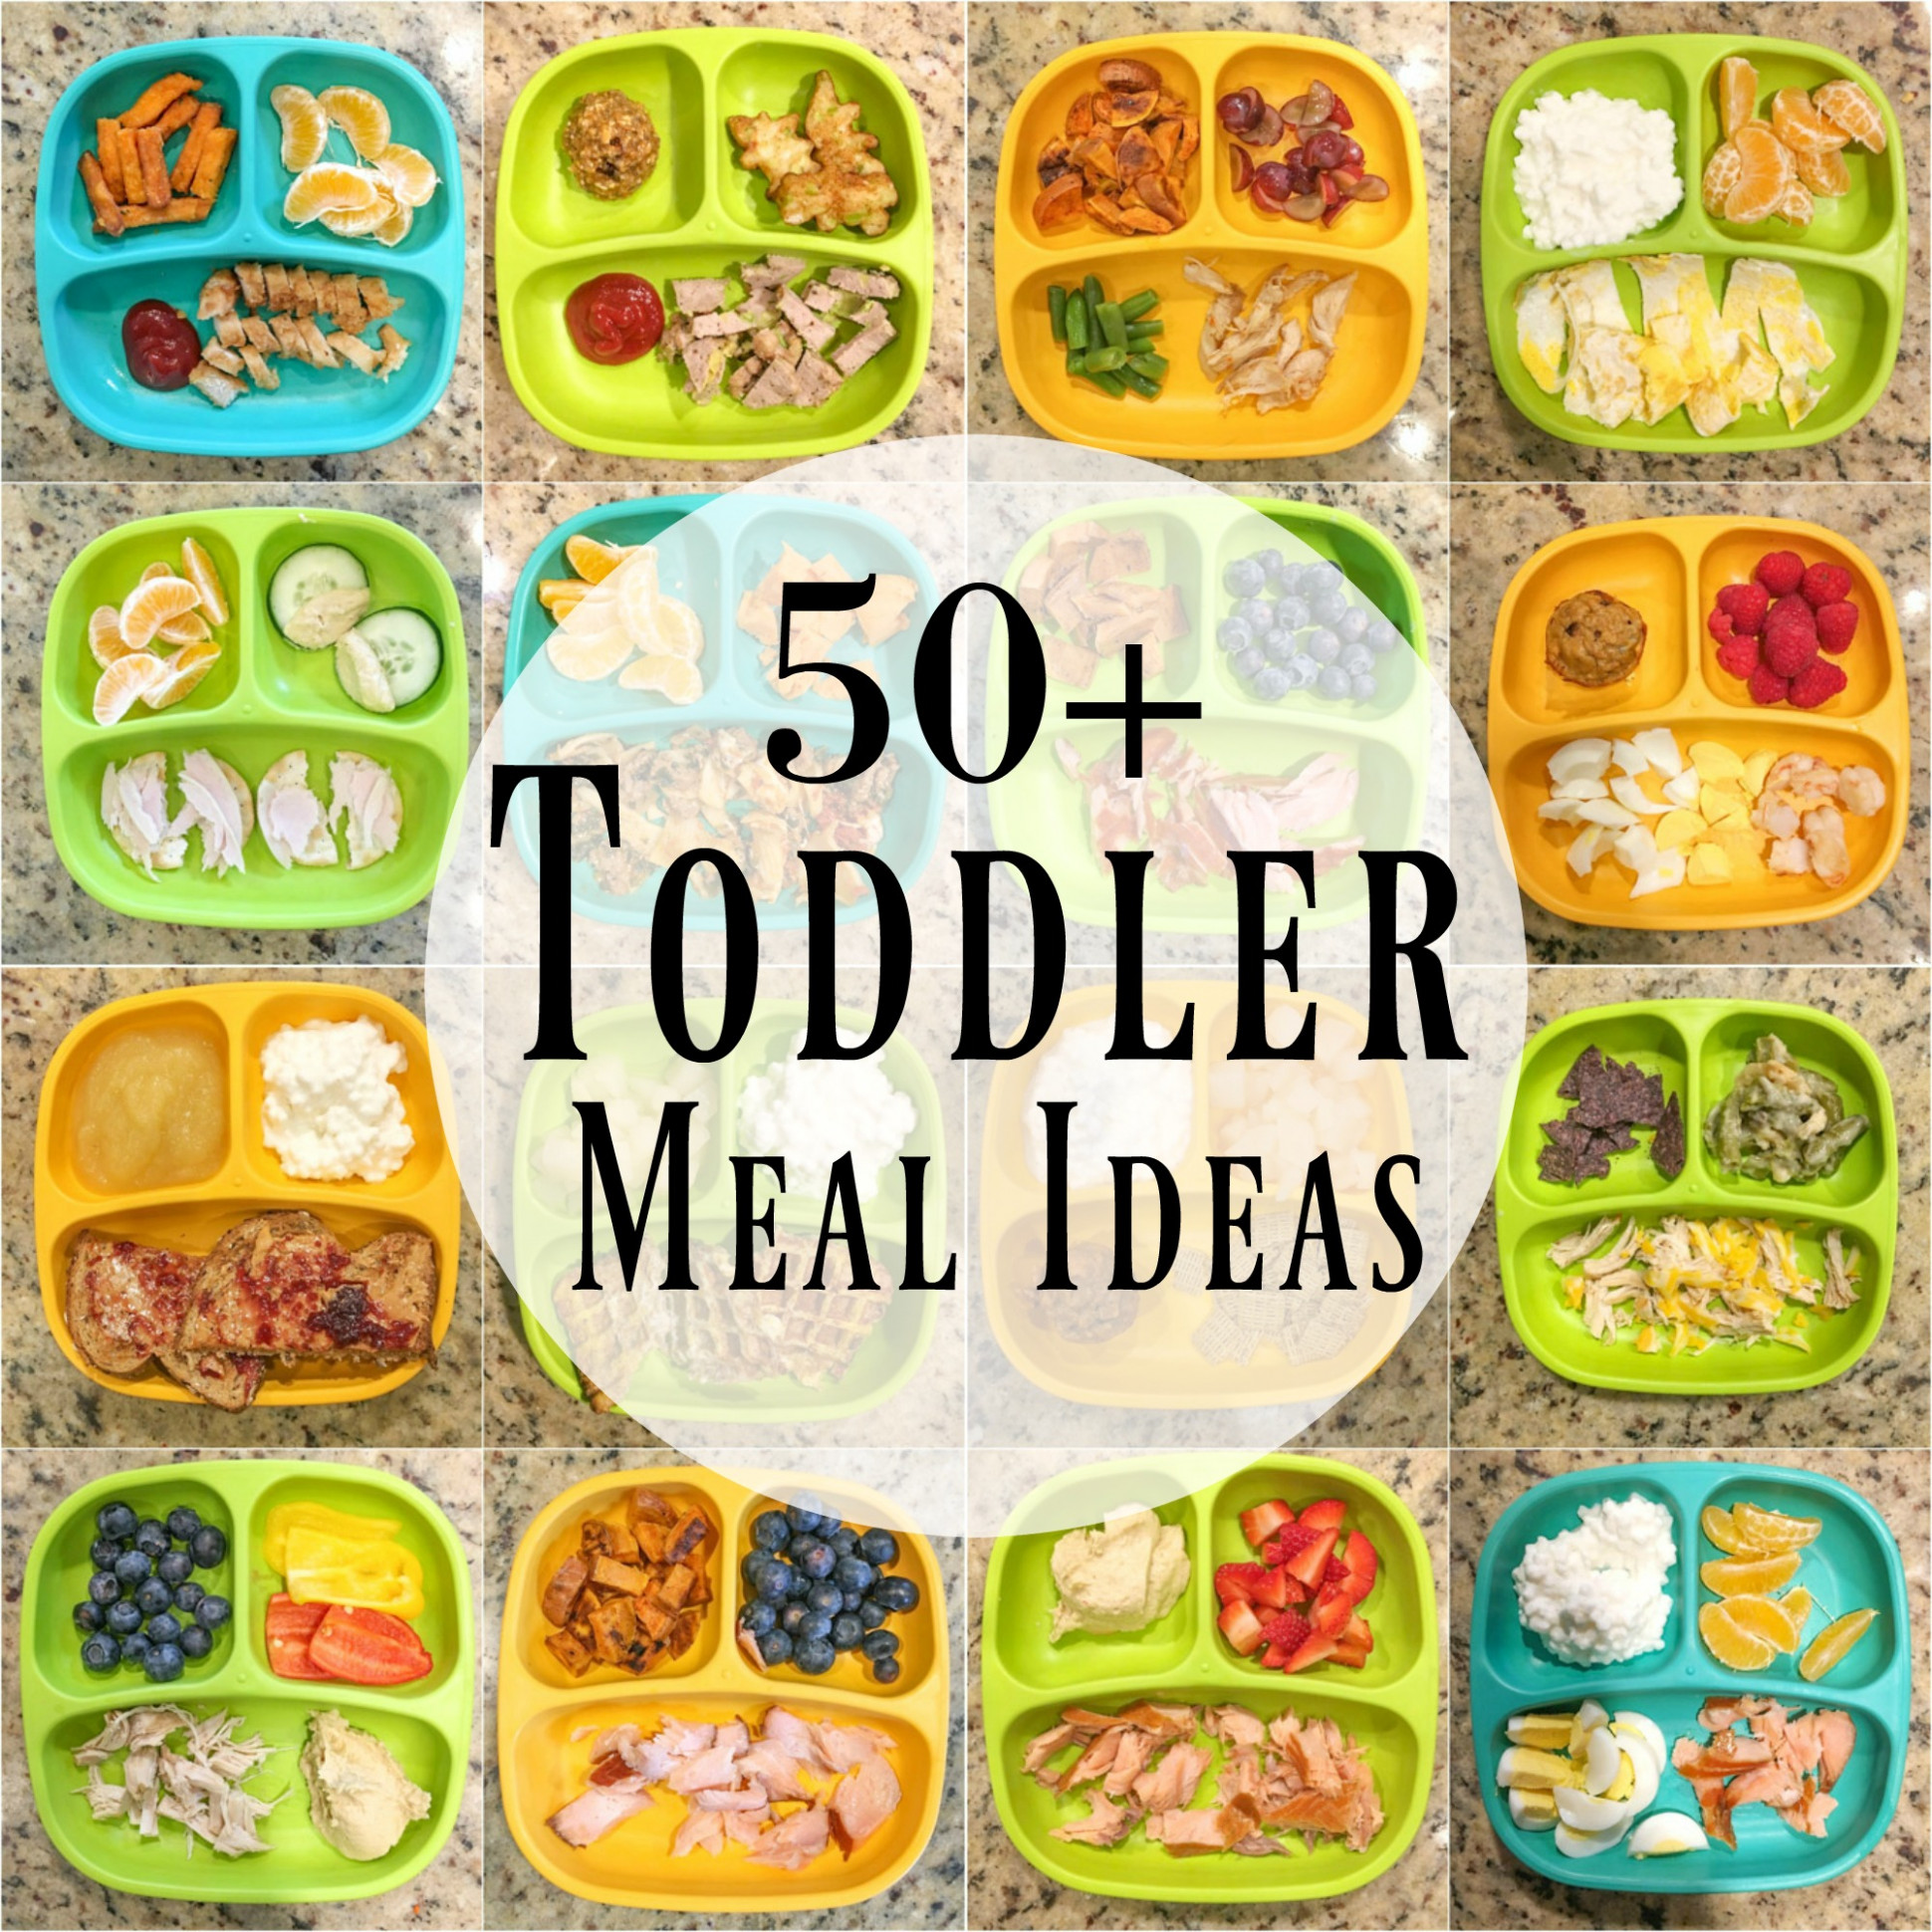 12 Healthy Toddler Meal Ideas | The Lean Green Bean - healthy recipes for kids